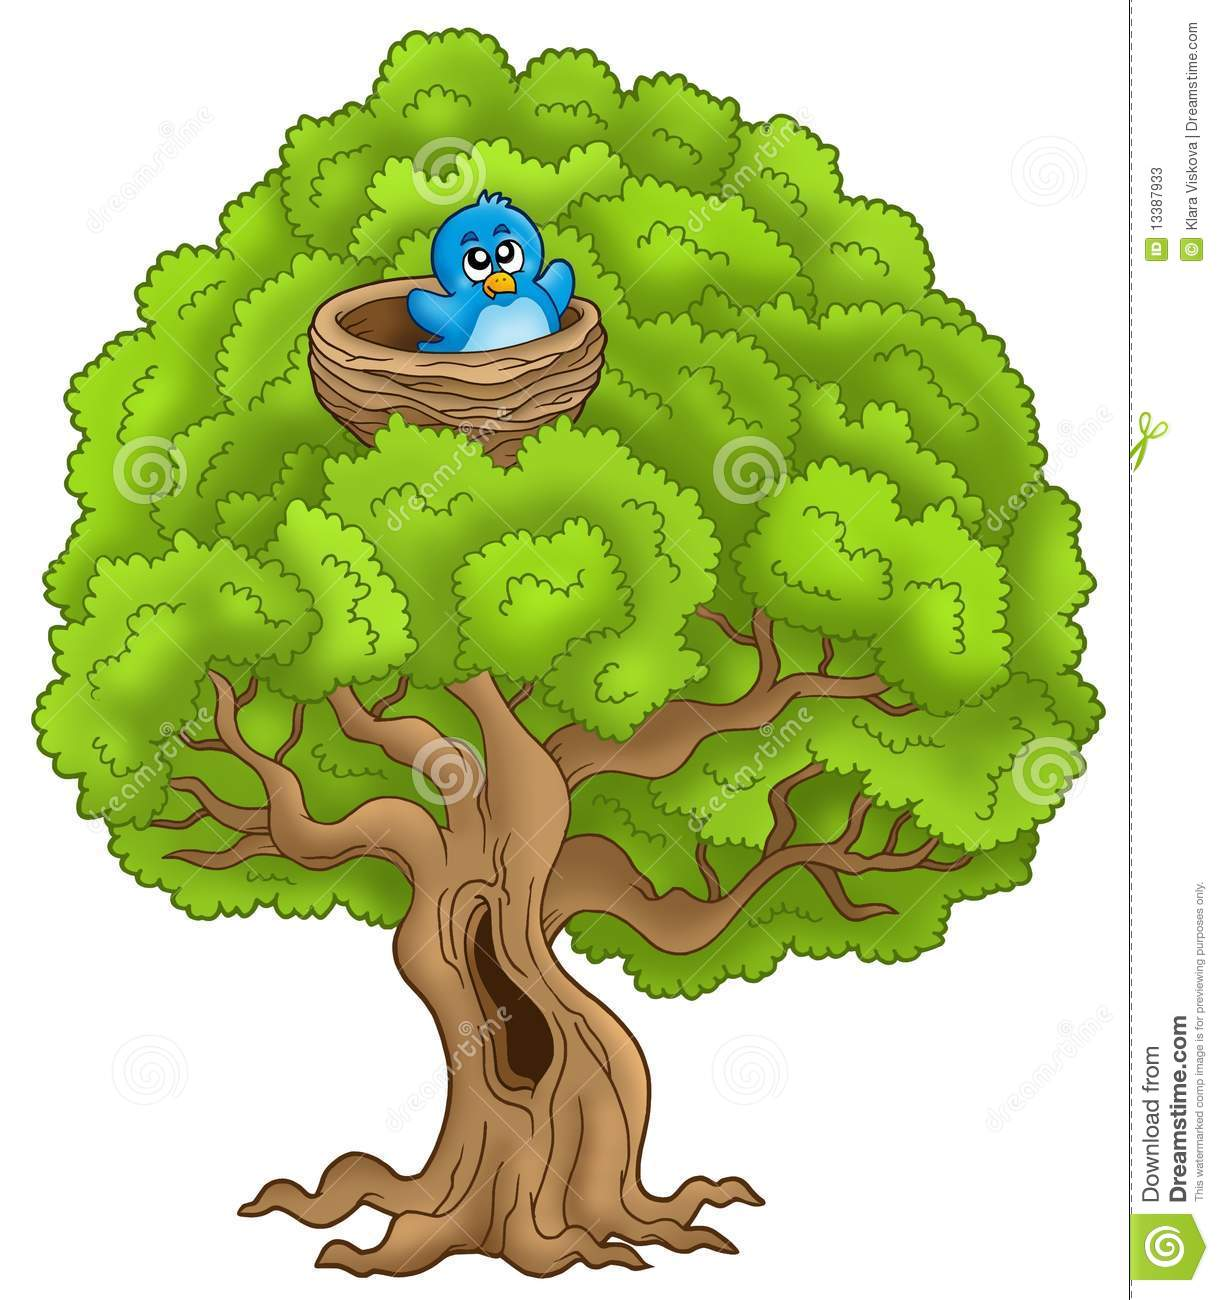 Big Tree With Blue Bird In Nest Stock Photos - Image: 13387933